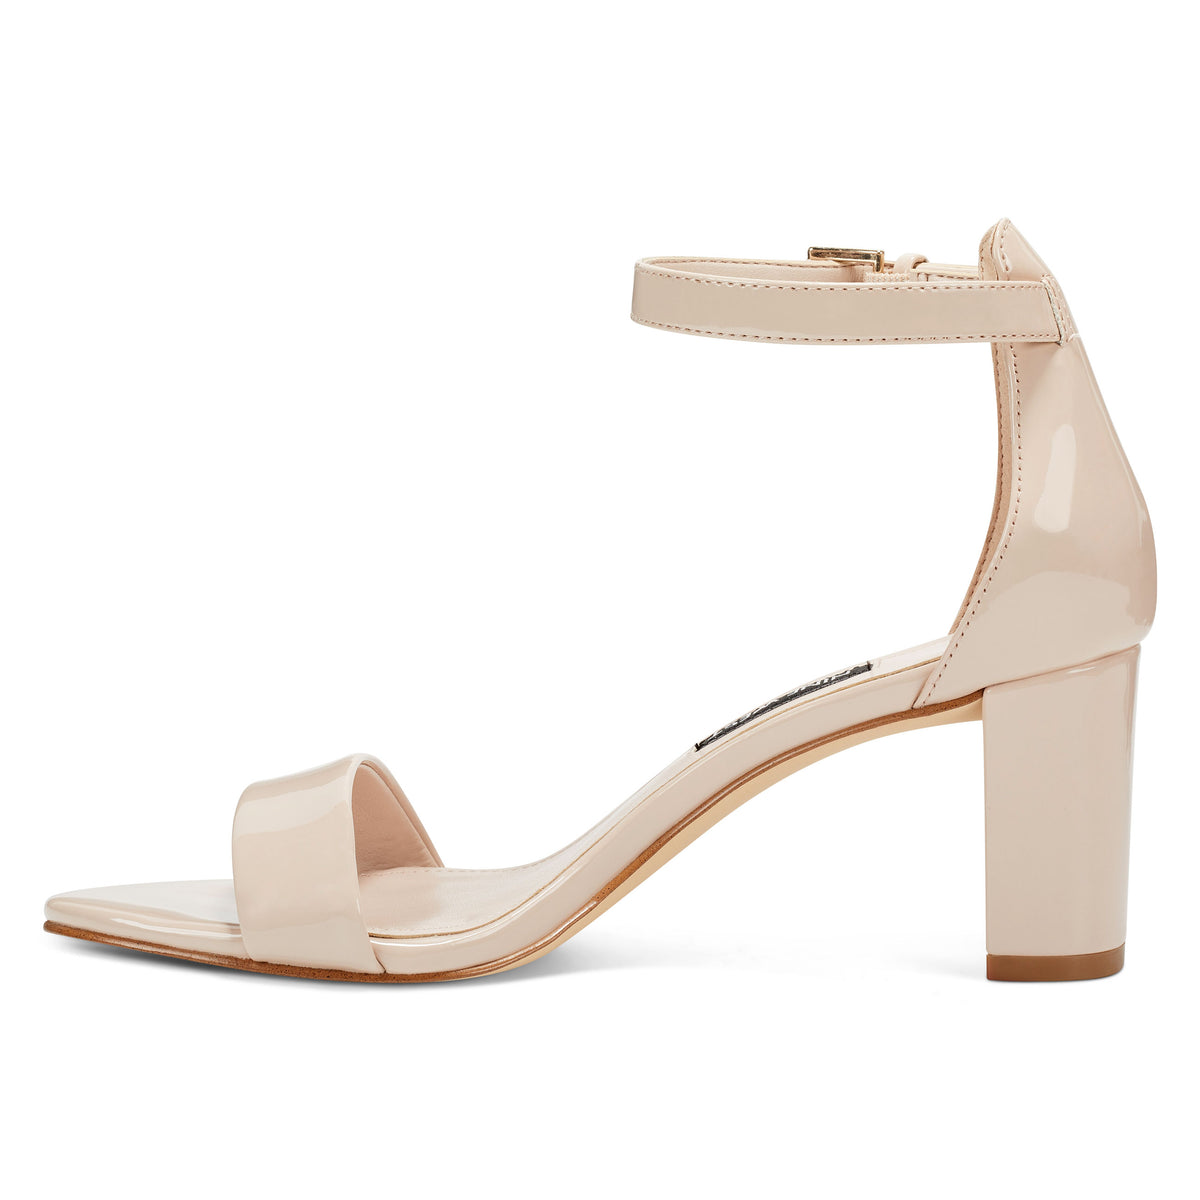 pruce-ankle-strap-block-heel-sandals-in-cashmere-patent